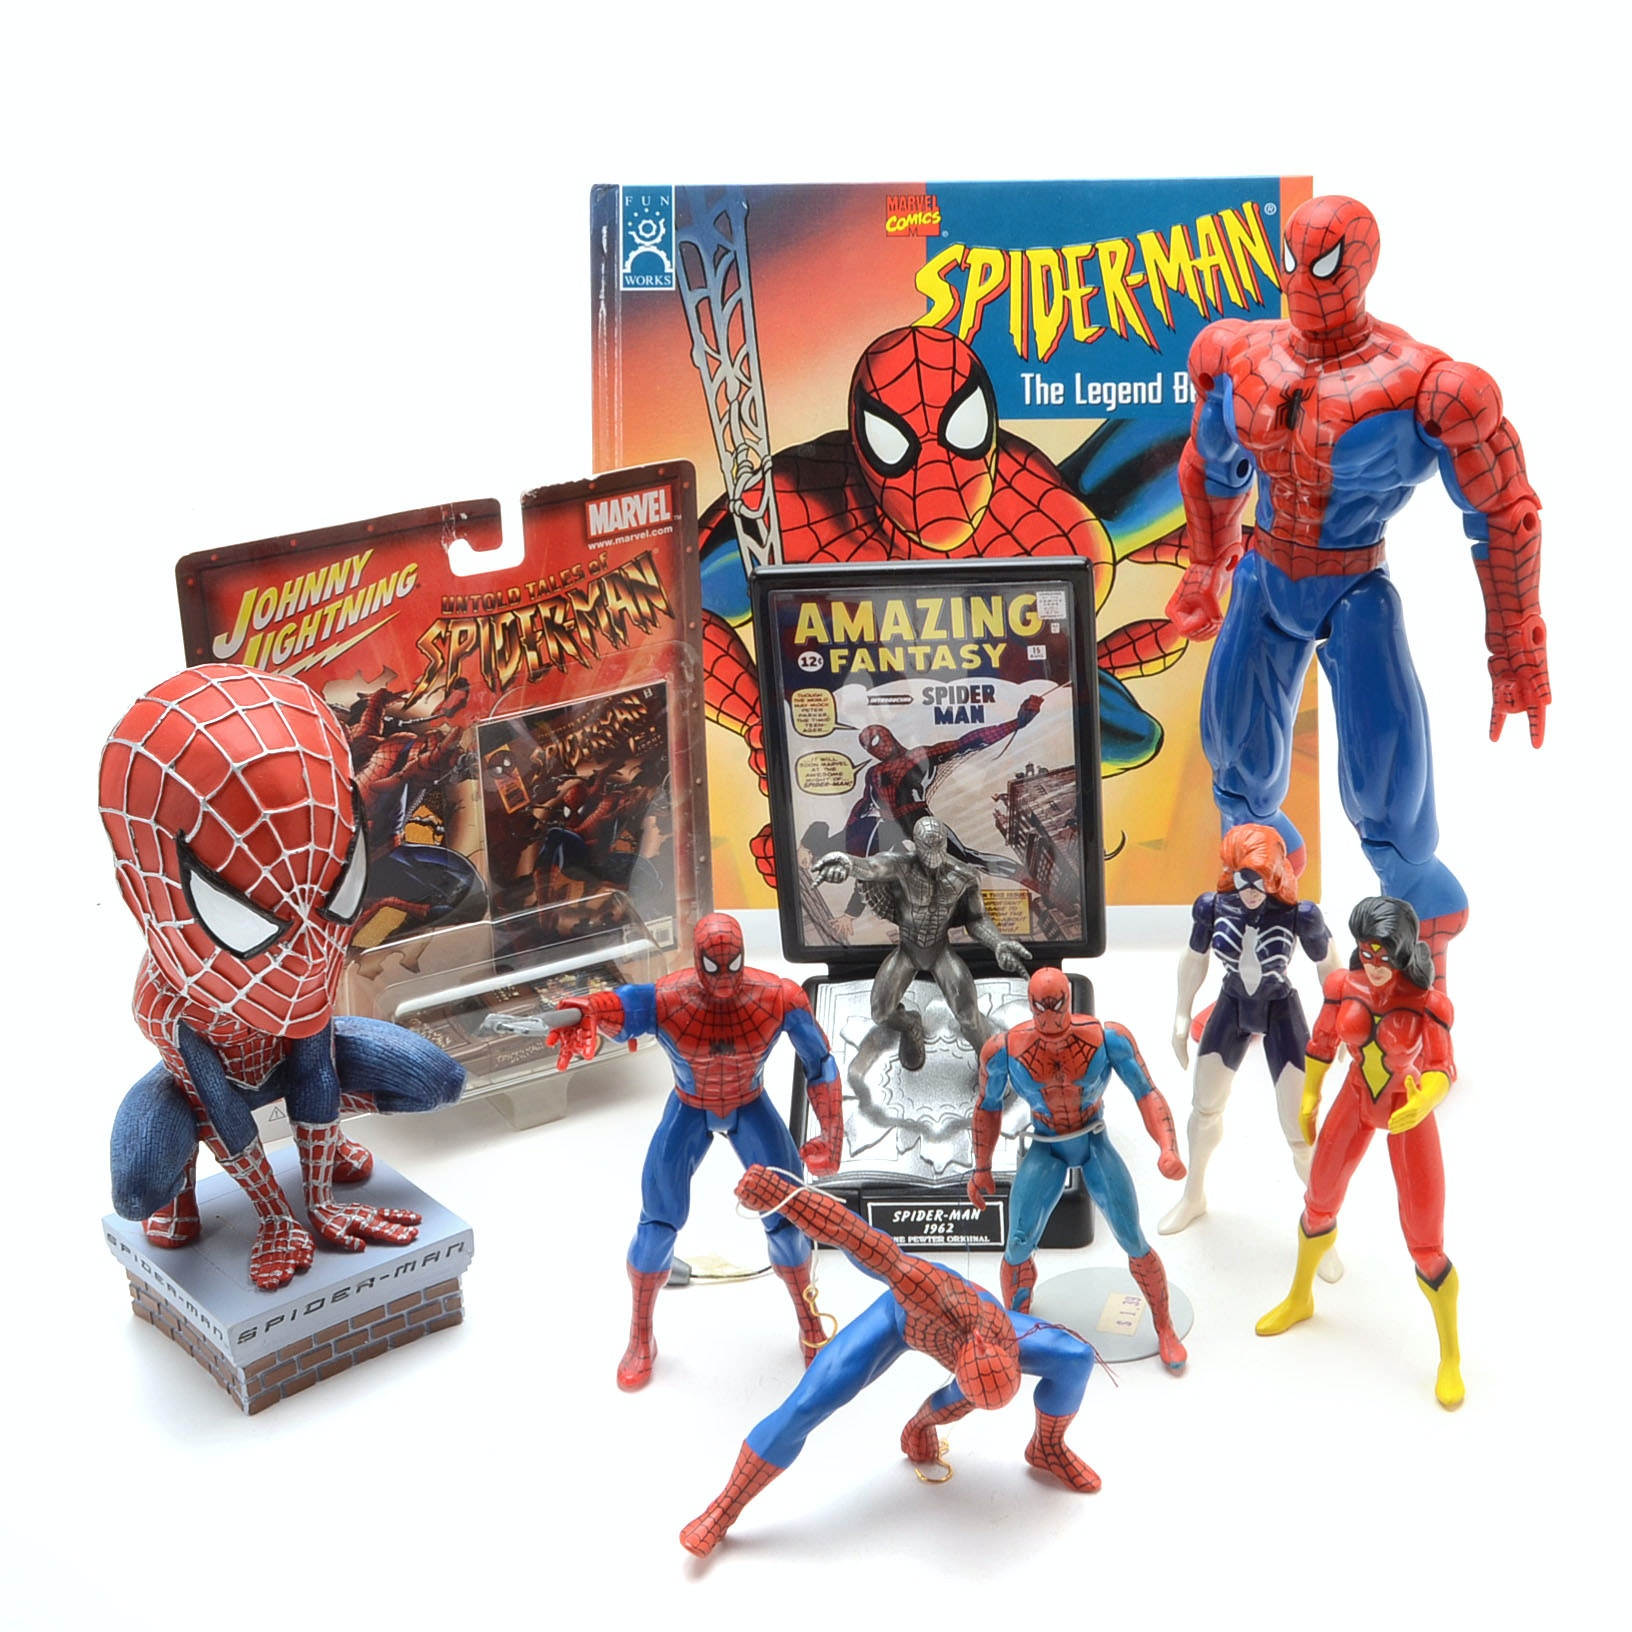 Collection of Marvel Comics Spiderman Collectibles